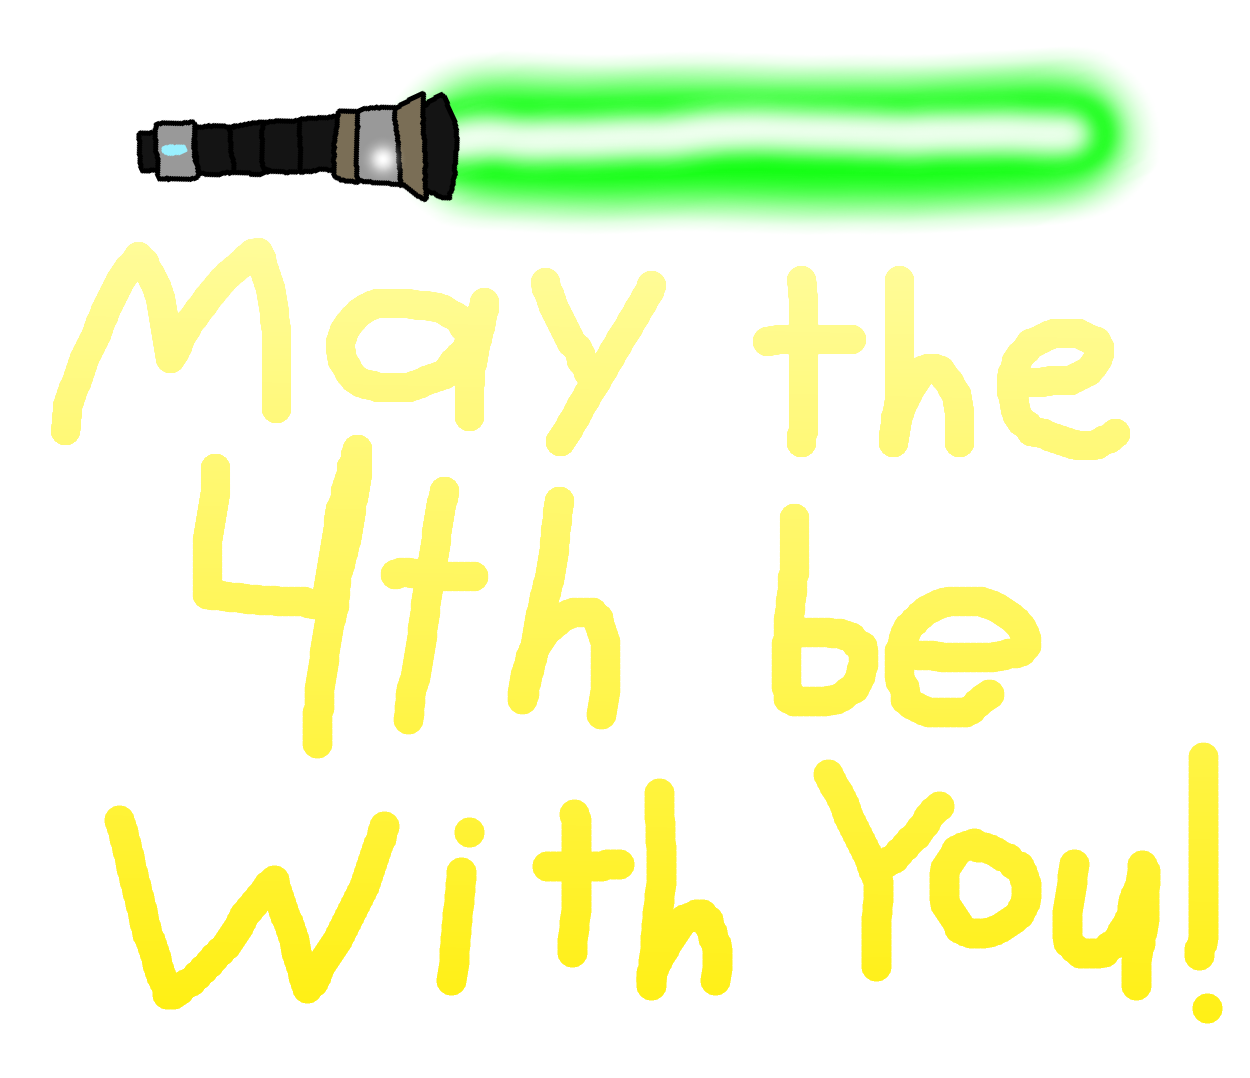 Star wars day clipart clip art library library Happy Star Wars Day! — Weasyl clip art library library